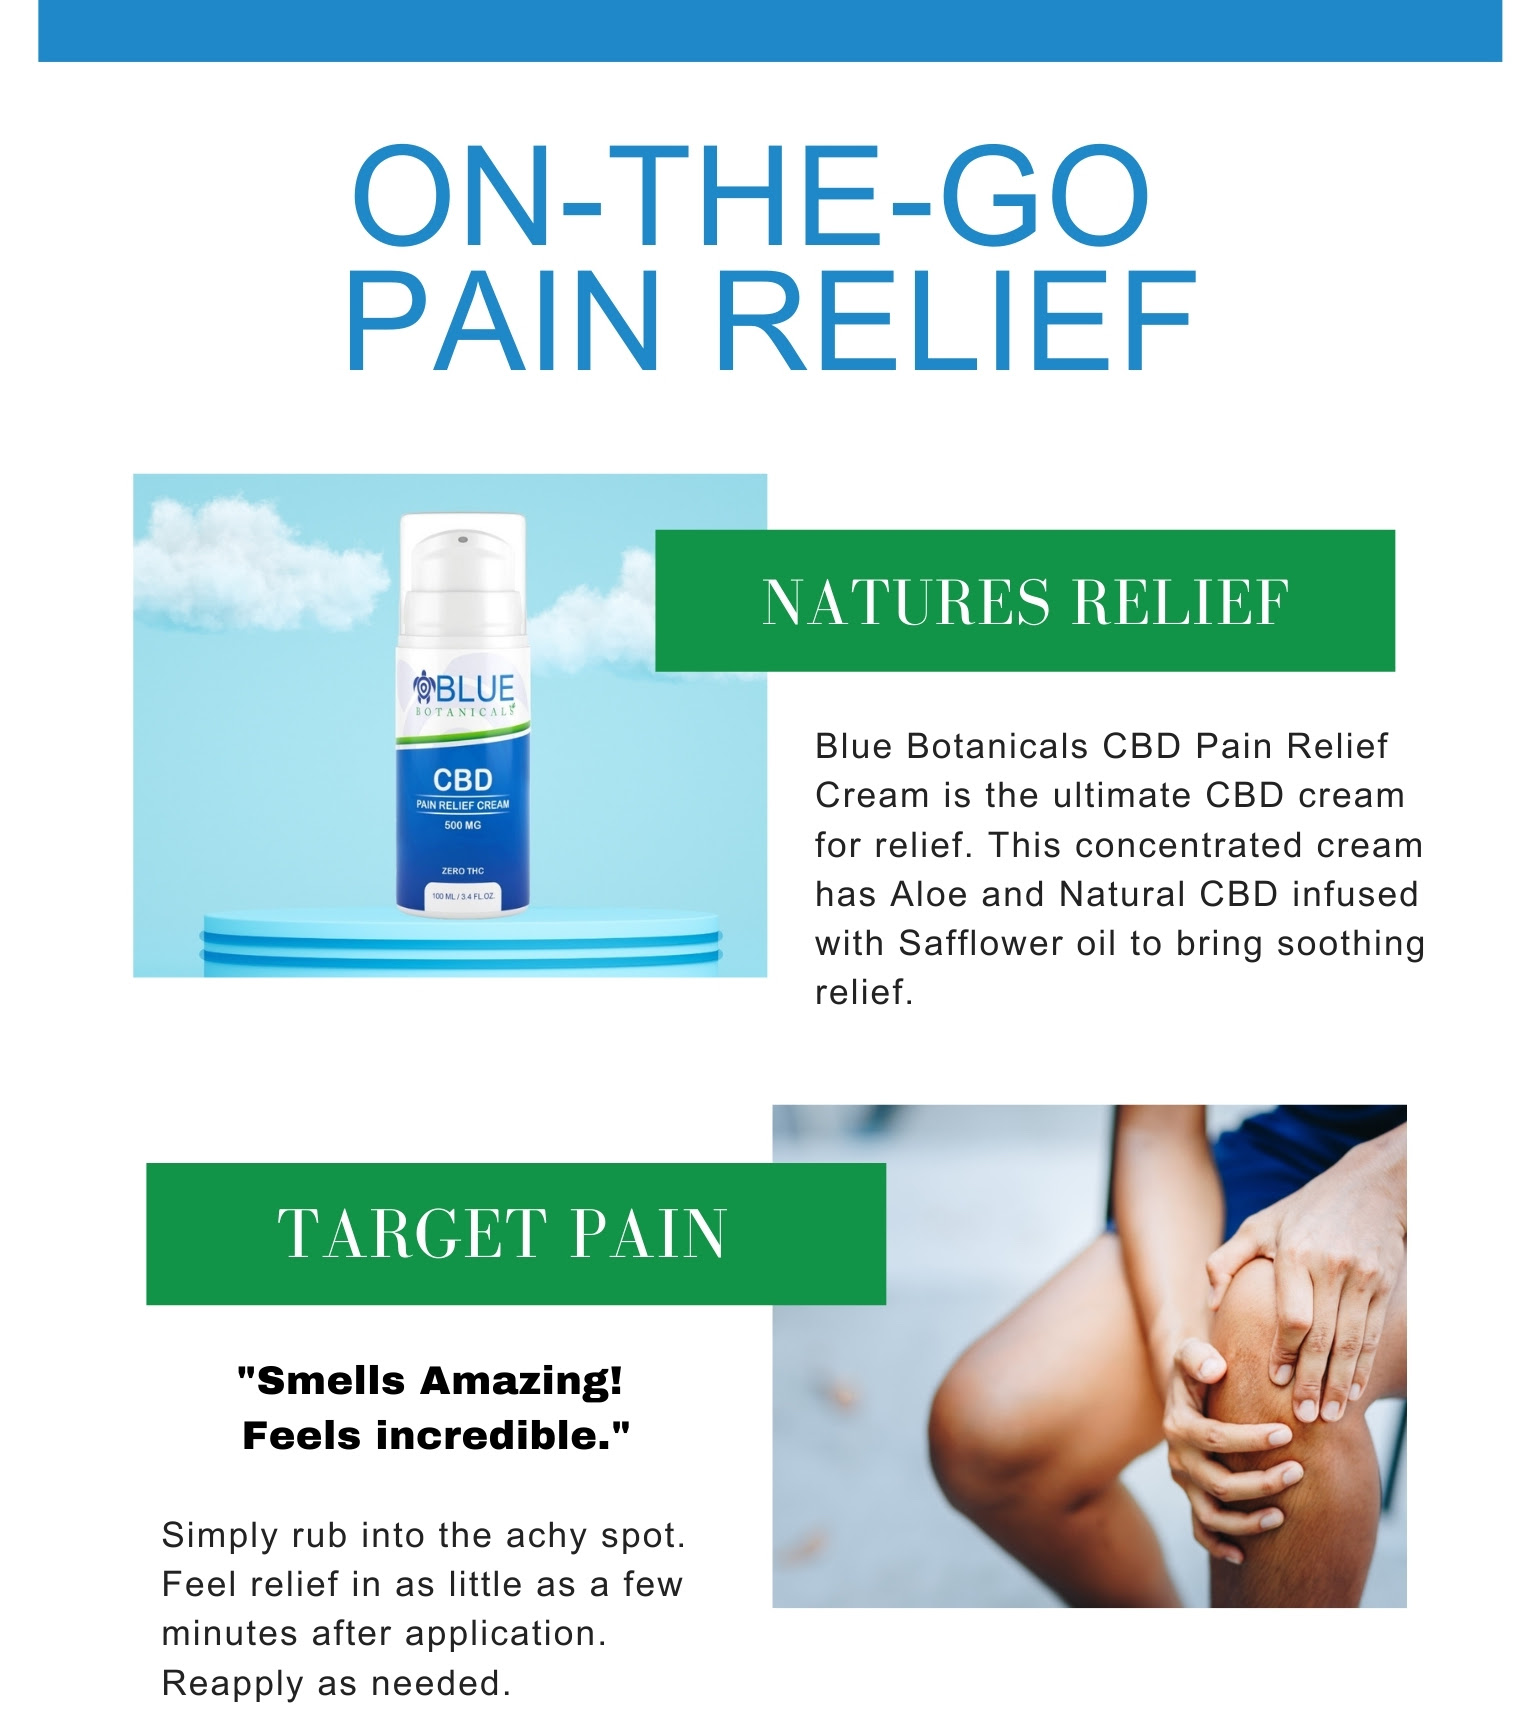 On the go pain relief from Blue Botanicals